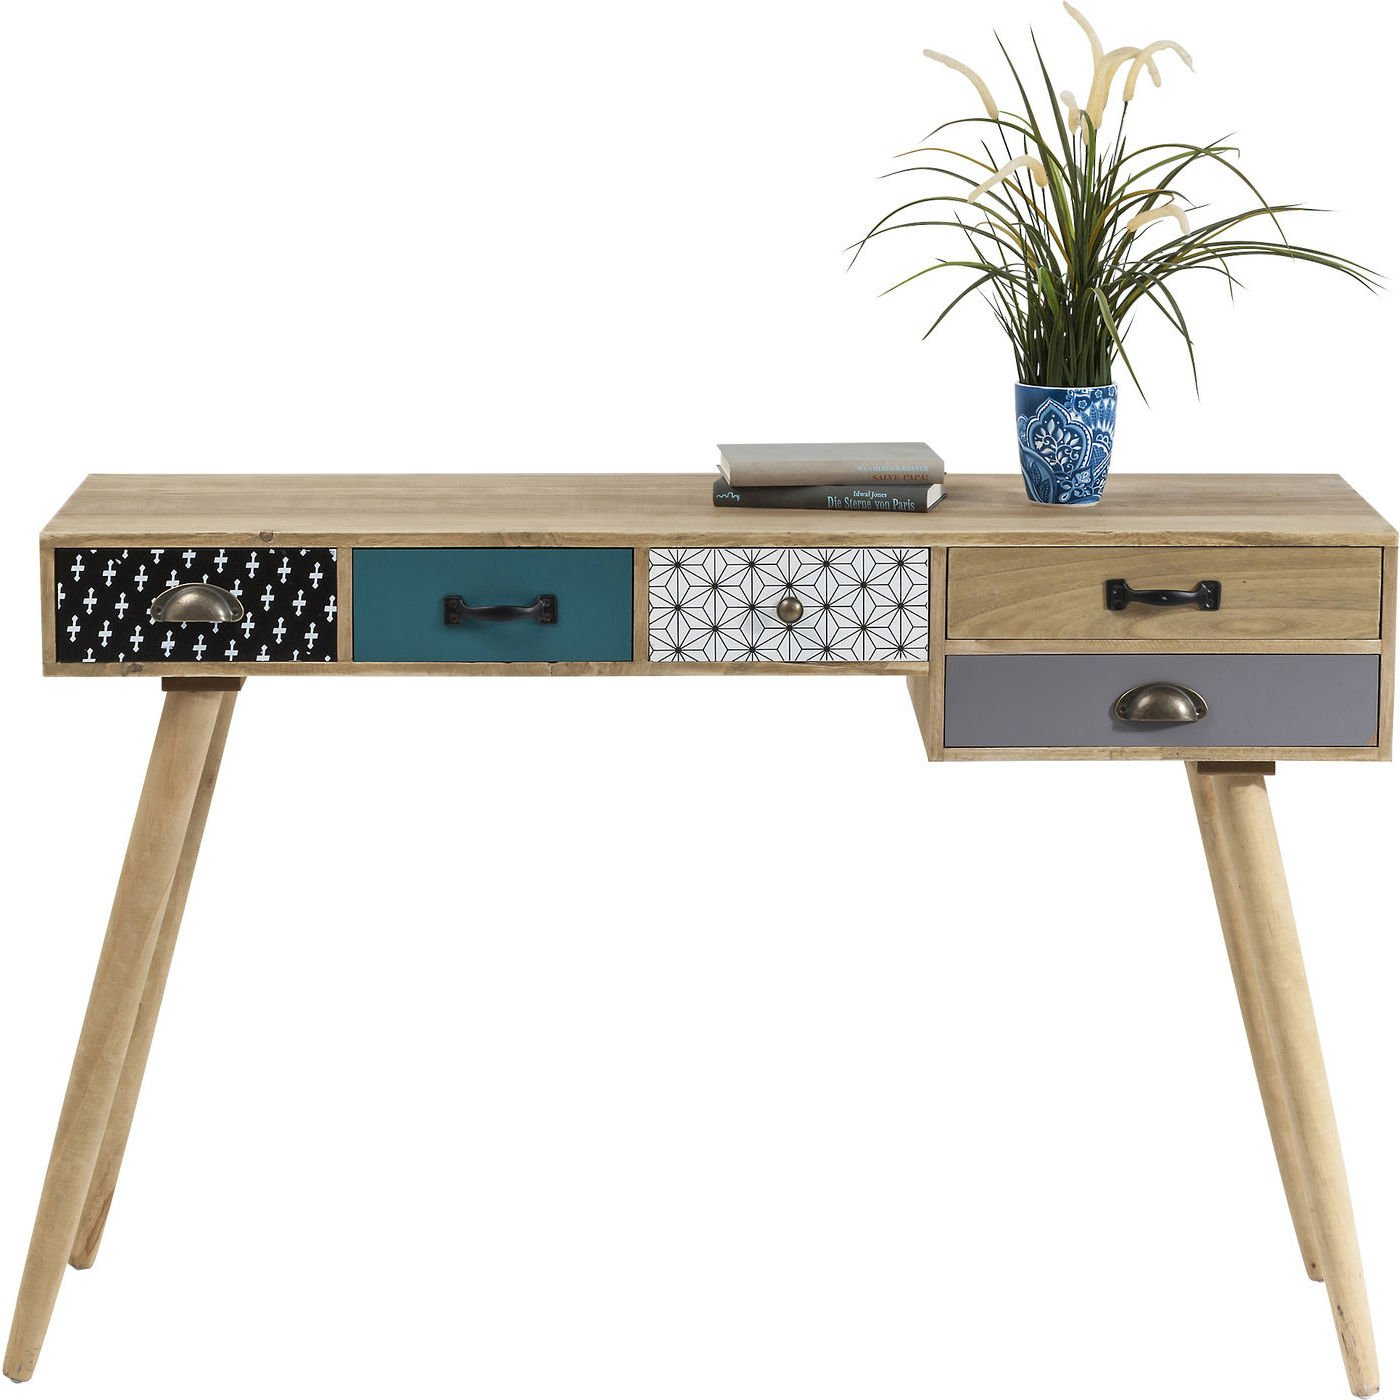 Console Colore Ameublement - Bureau Console Scandinave 5 Tiroirs Couleur Amazon Fr Cuisine [mjhdah]https://images-na.ssl-images-amazon.com/images/I/61QoHMb%2BGQL._SL1400_.jpg